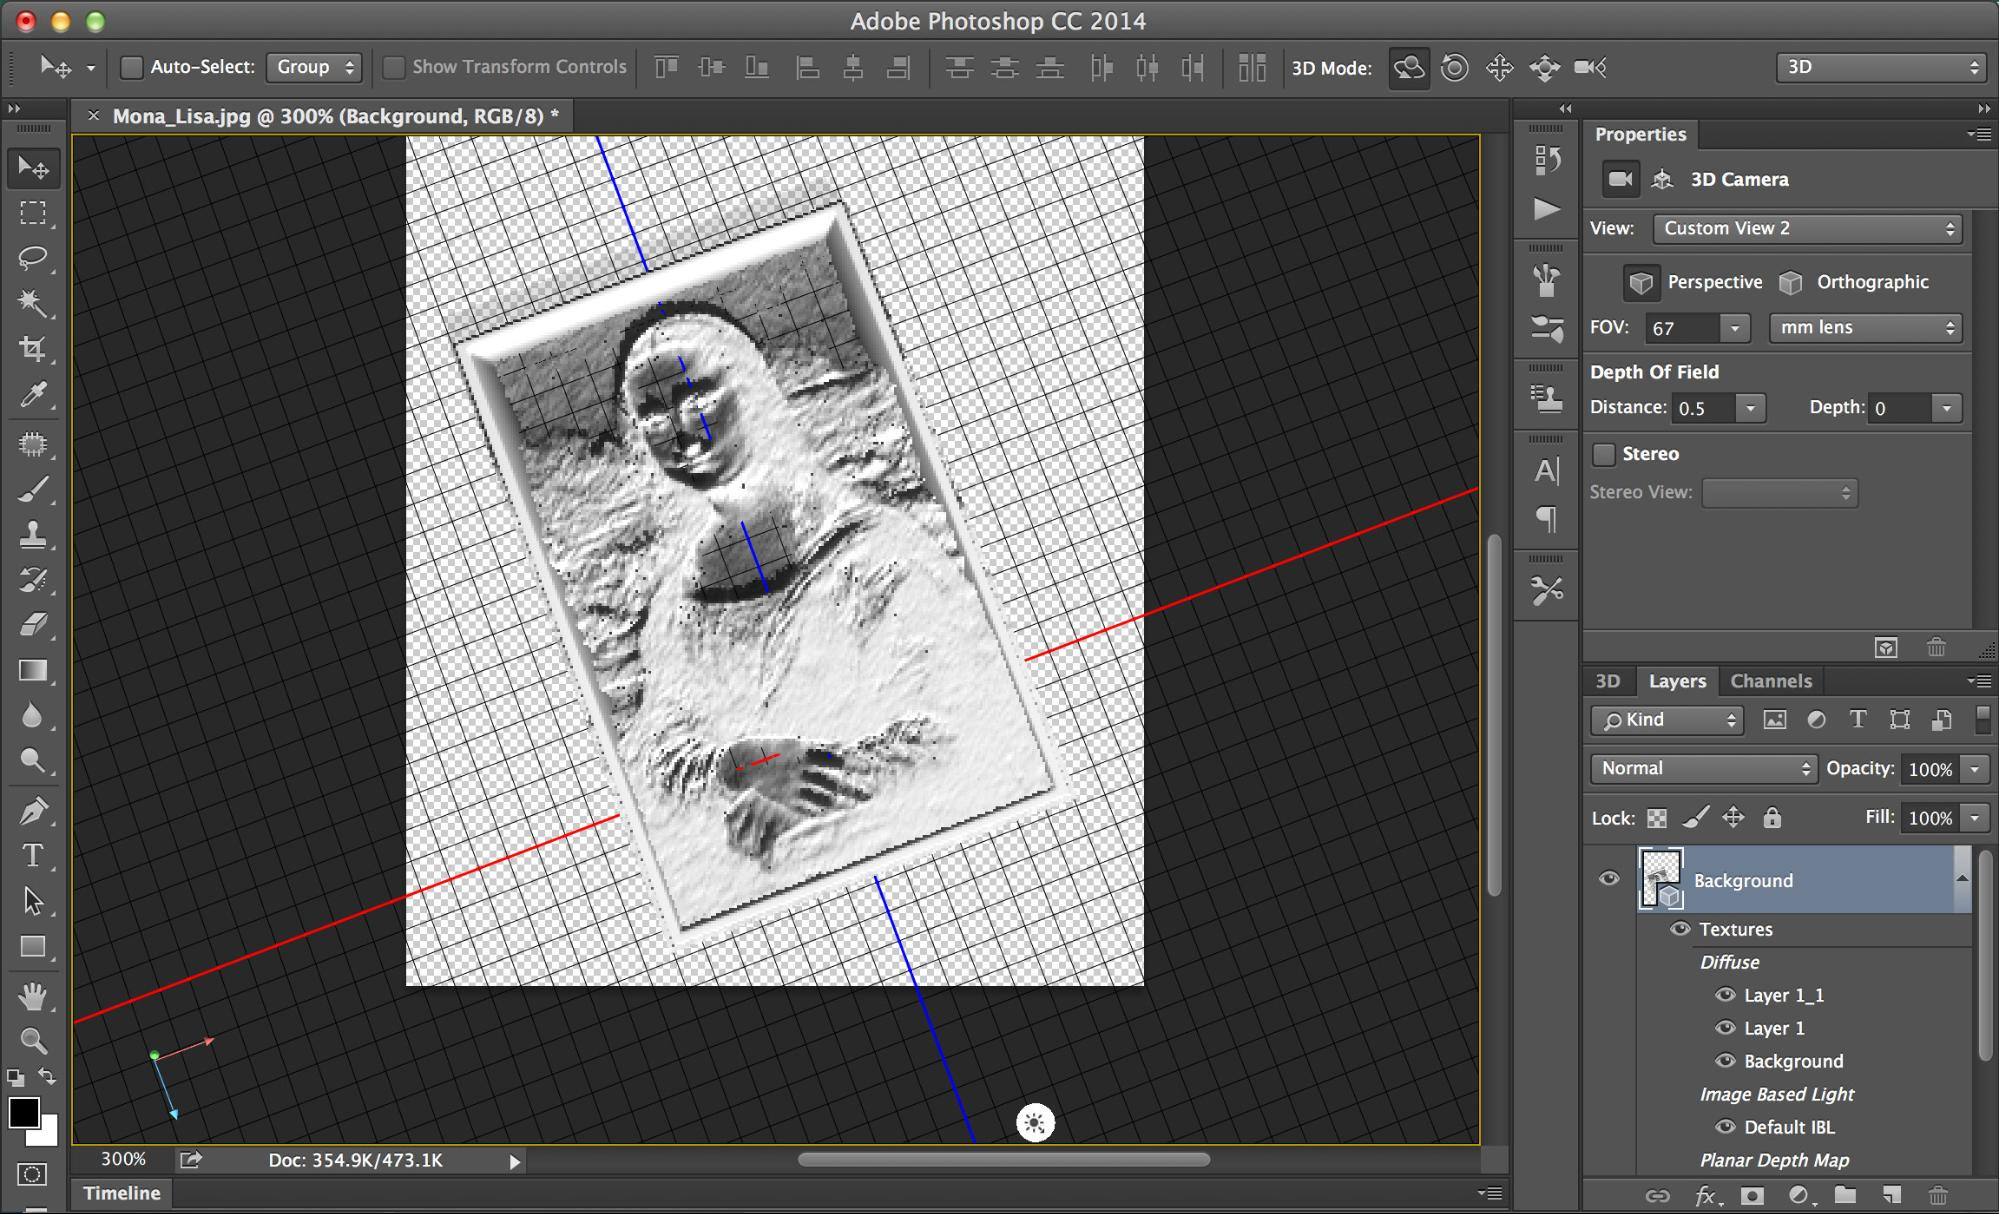 Photoshop Automatically Goes Through A Series Of Steps To Convert The Image Grayscale Invert Colors And Make 3D Depth Map